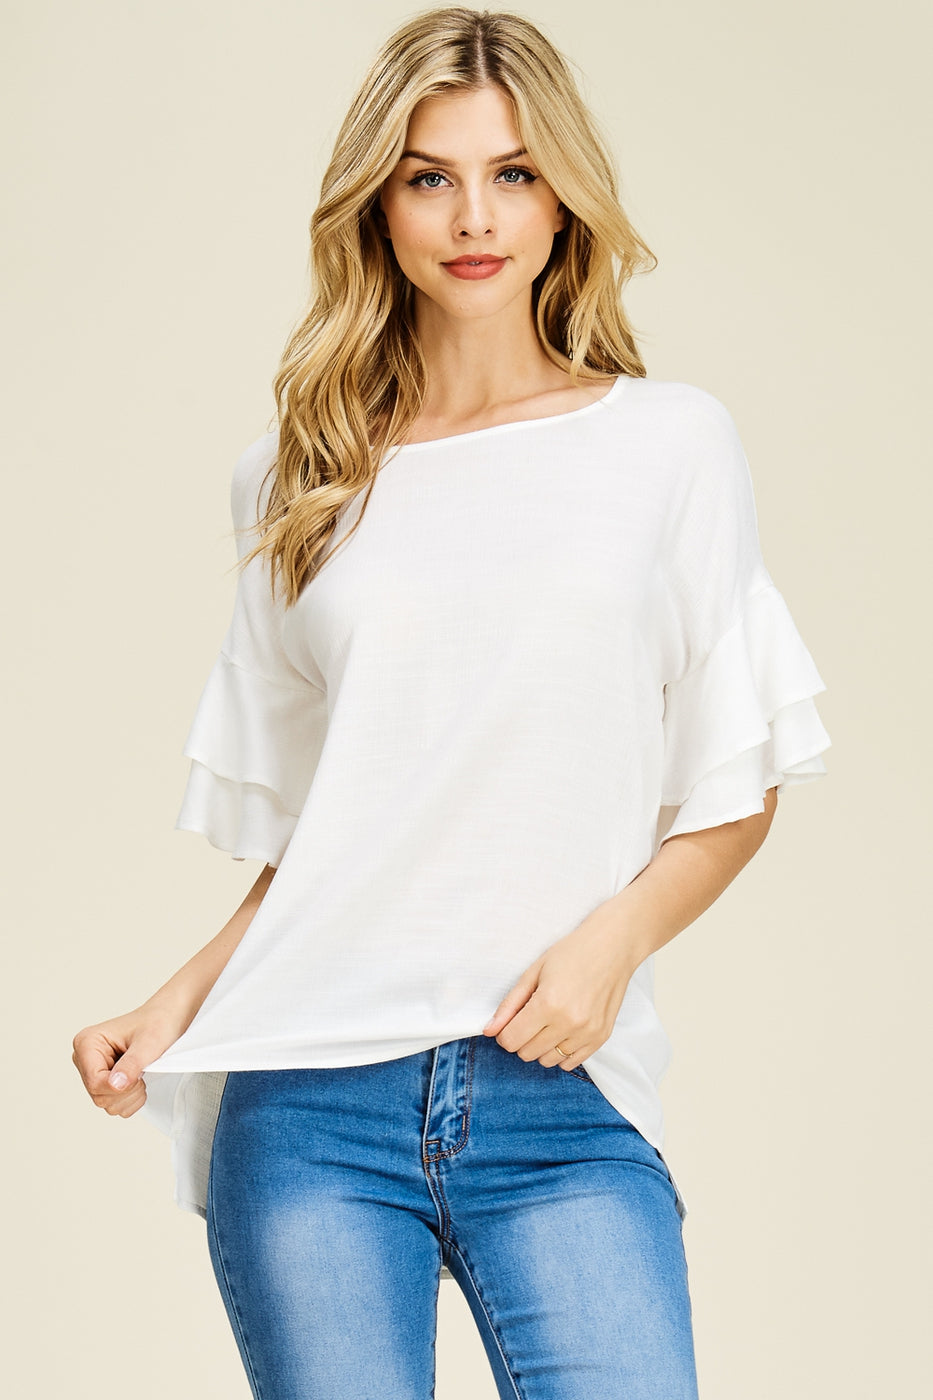 Black Ruffle Sleeve Top (Shown in White)